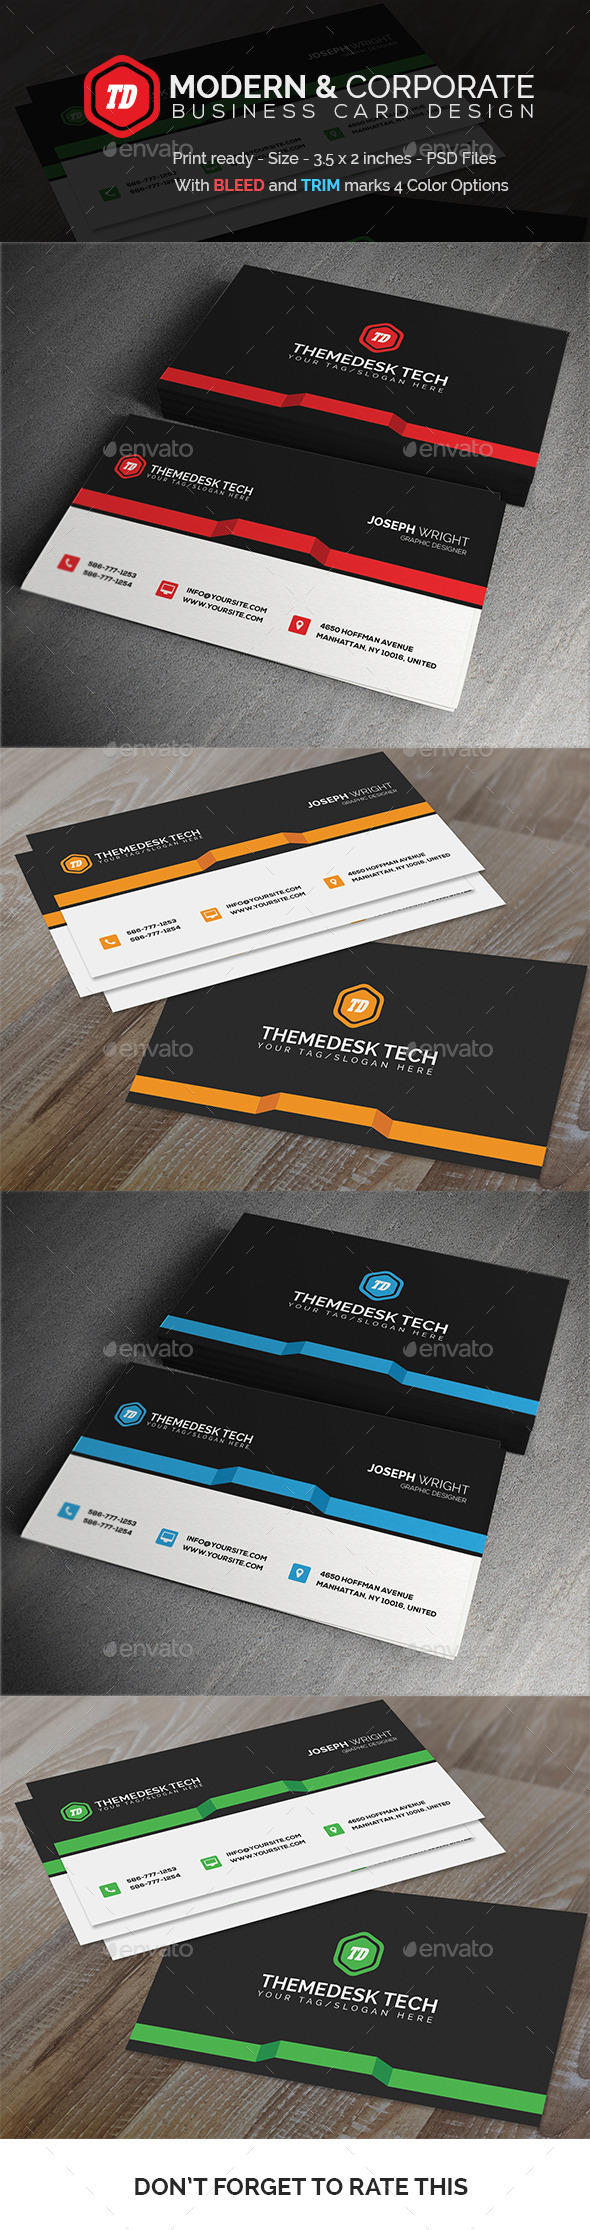 Modern and Corporate - Business Card - Corporate Business Cards